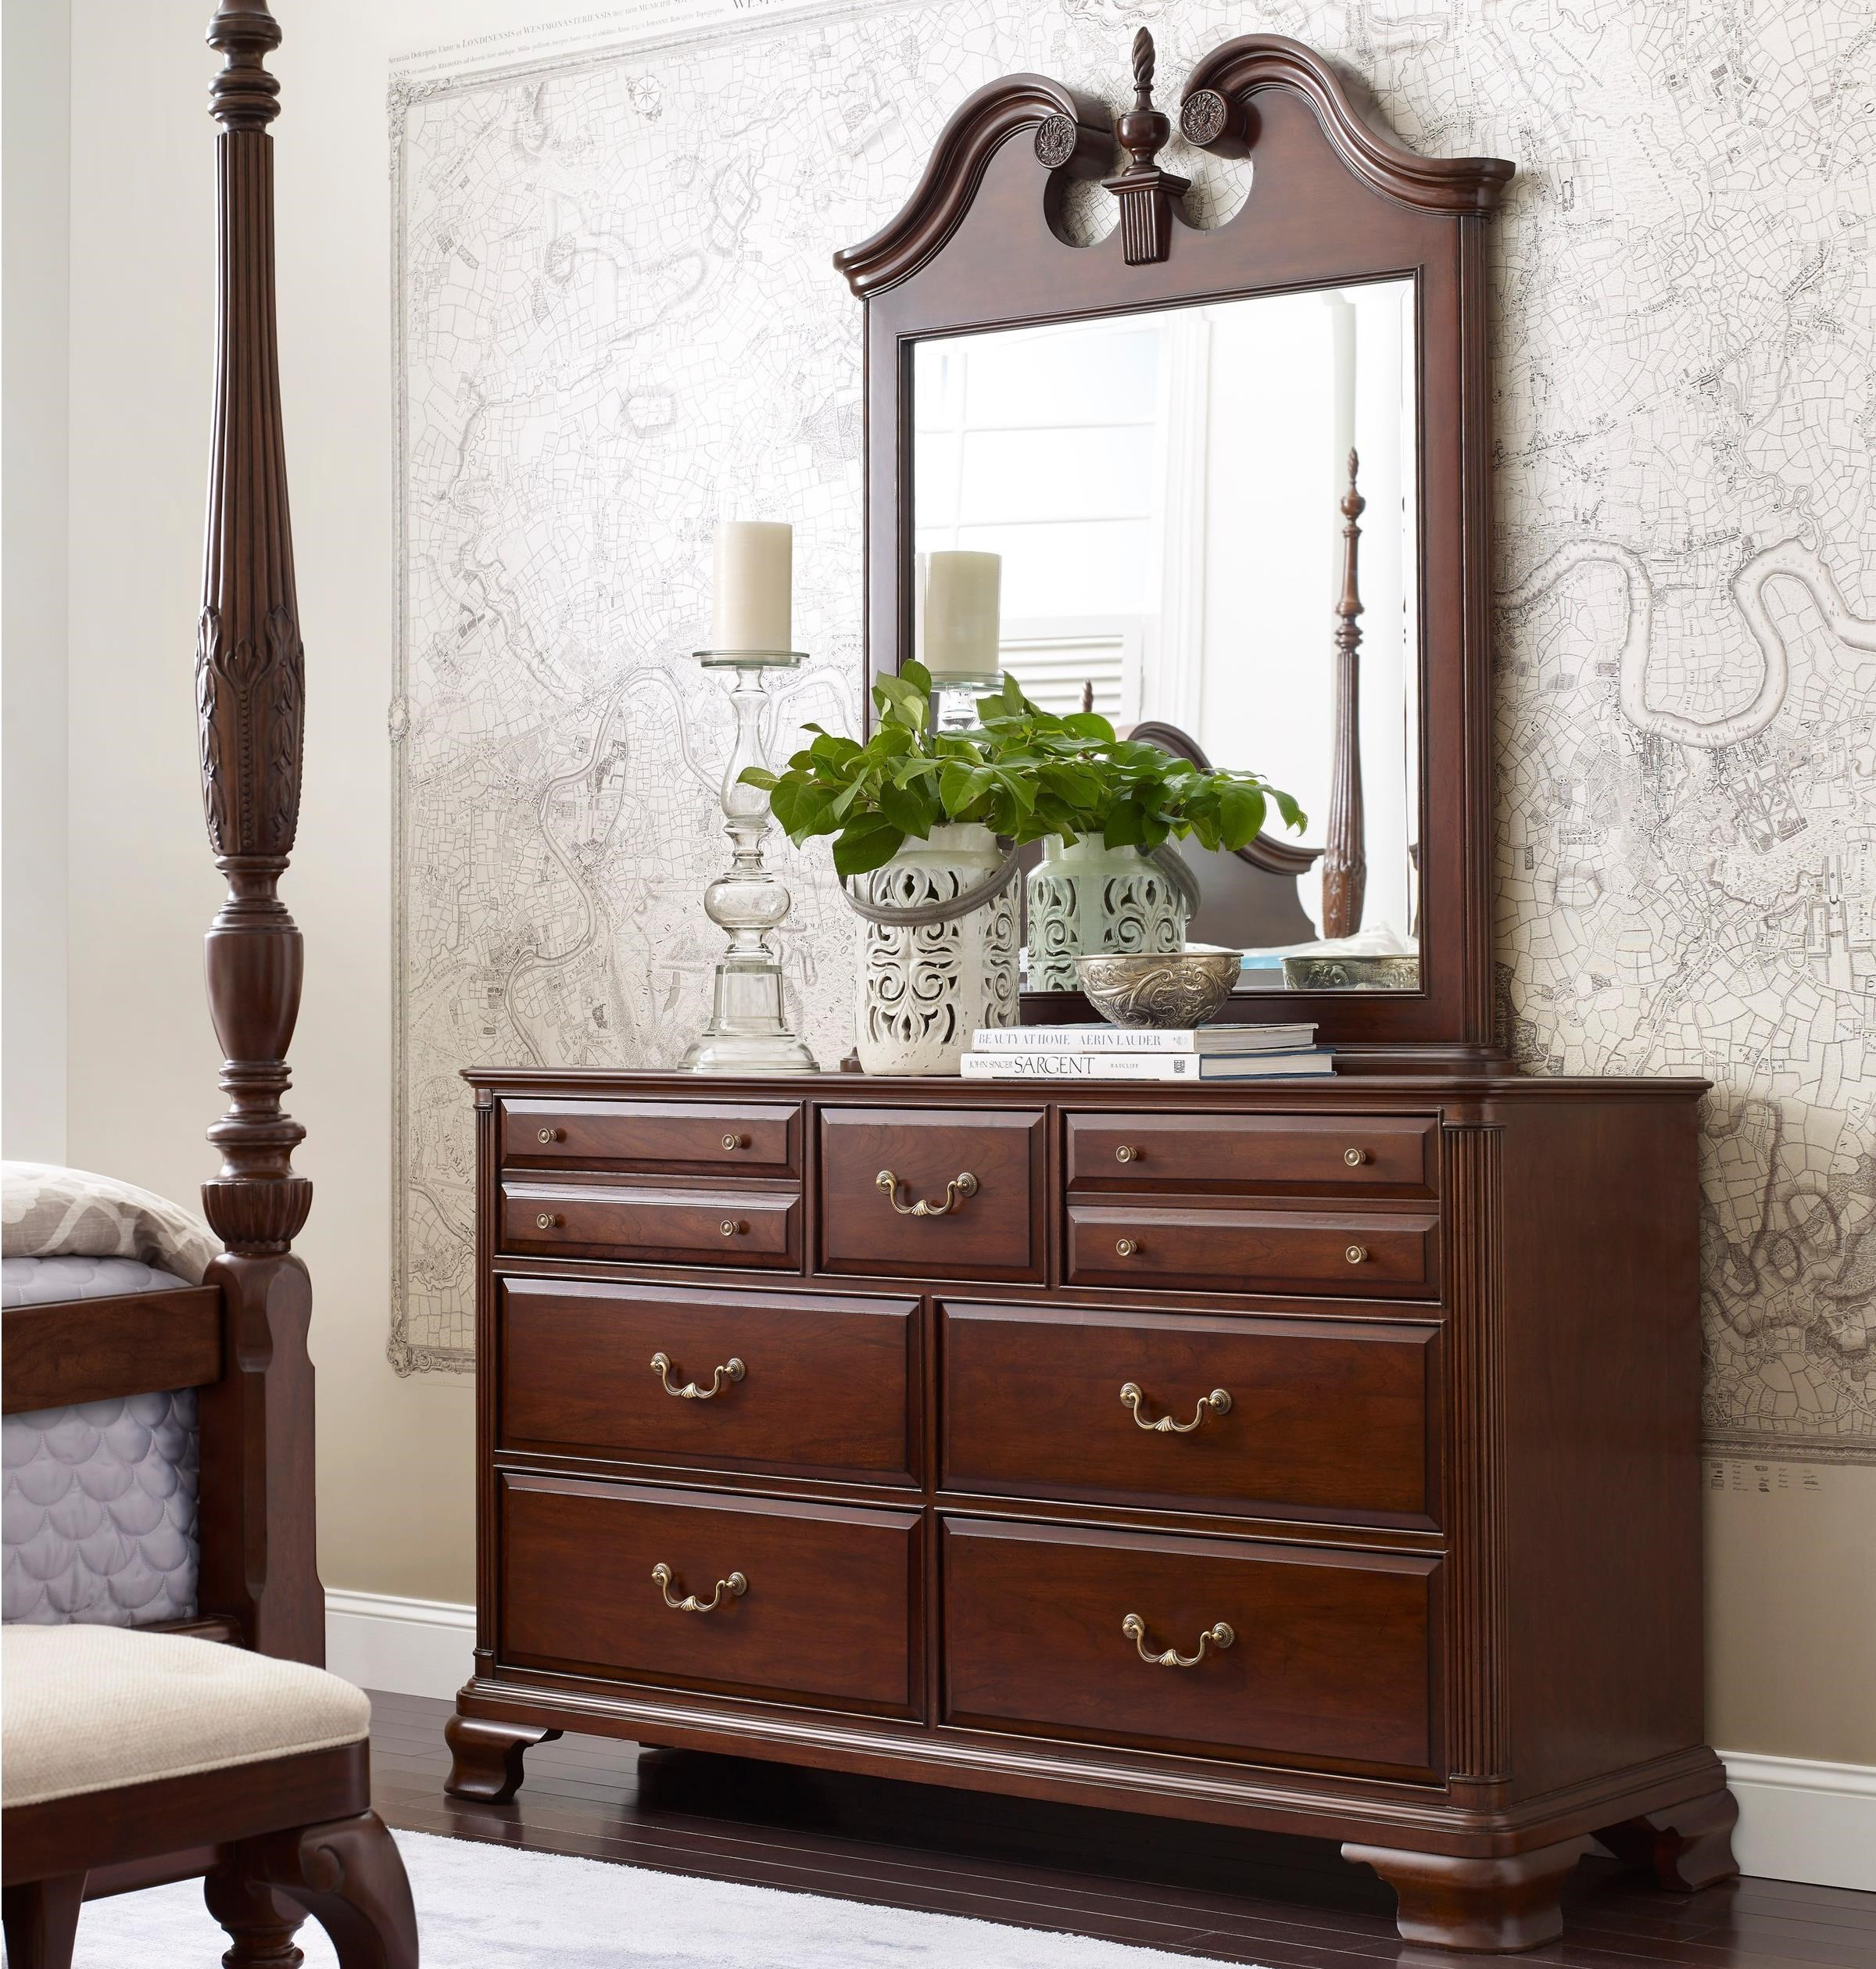 Kincaid Furniture Hadleigh Dresser and Mirror Set - Item Number: 607-131+607-030